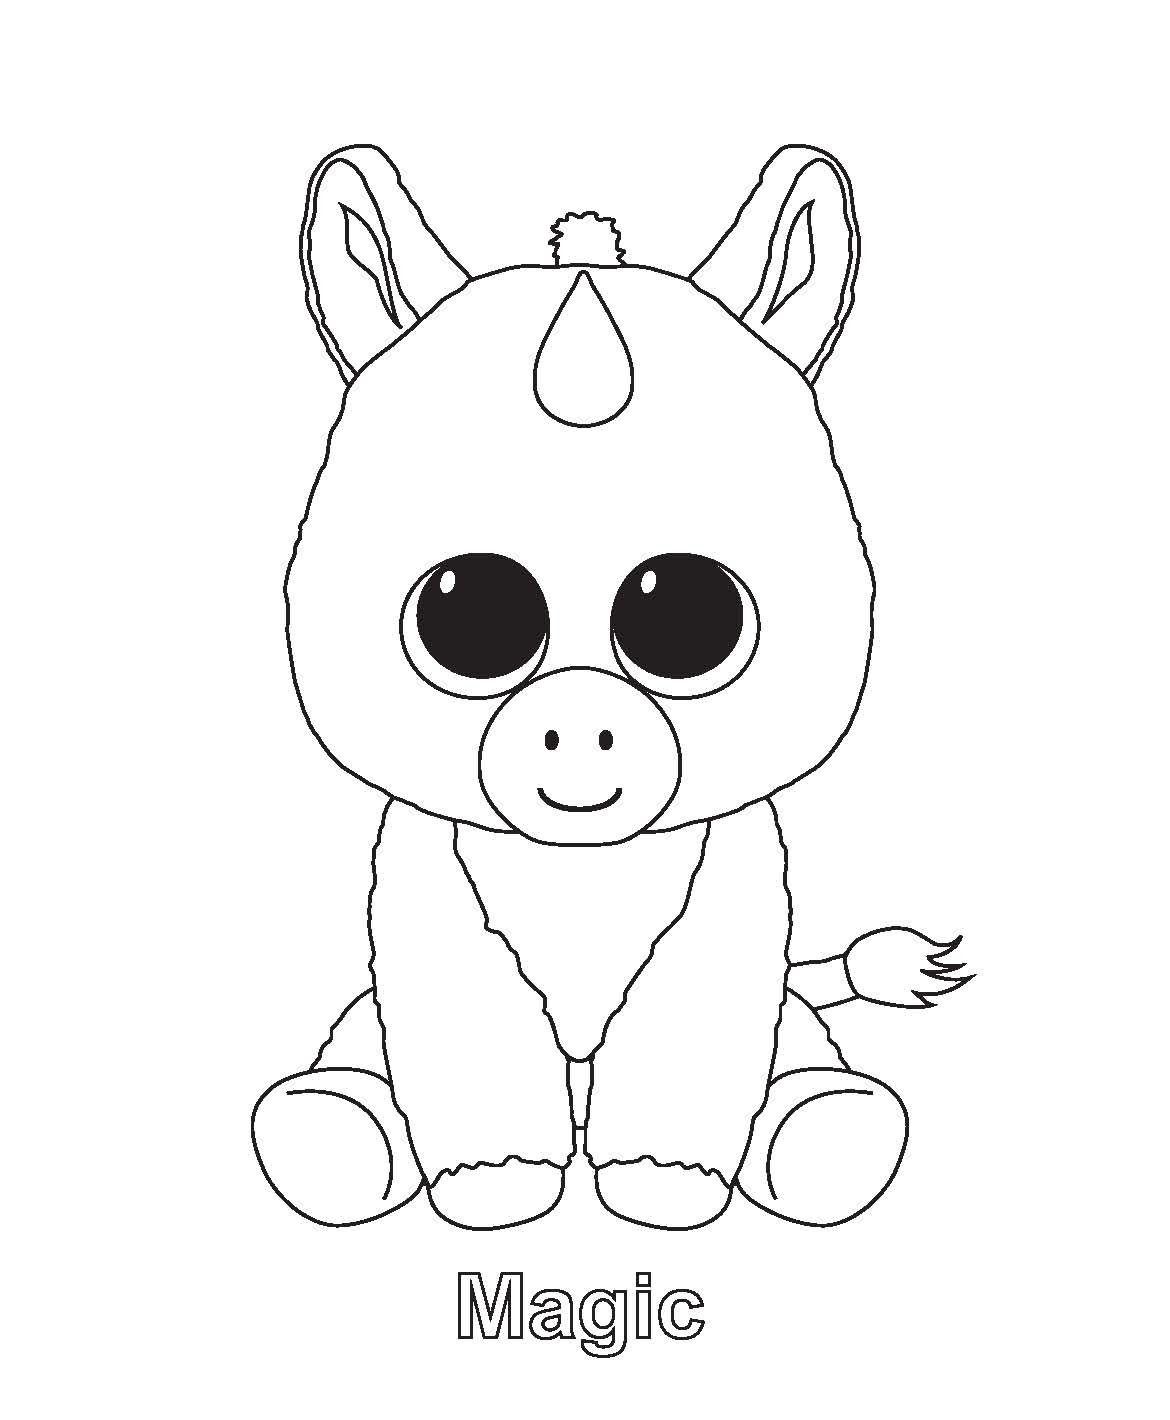 Boo Magic Beanie Boo Beanie Boo Dog Coloring Pages Ty